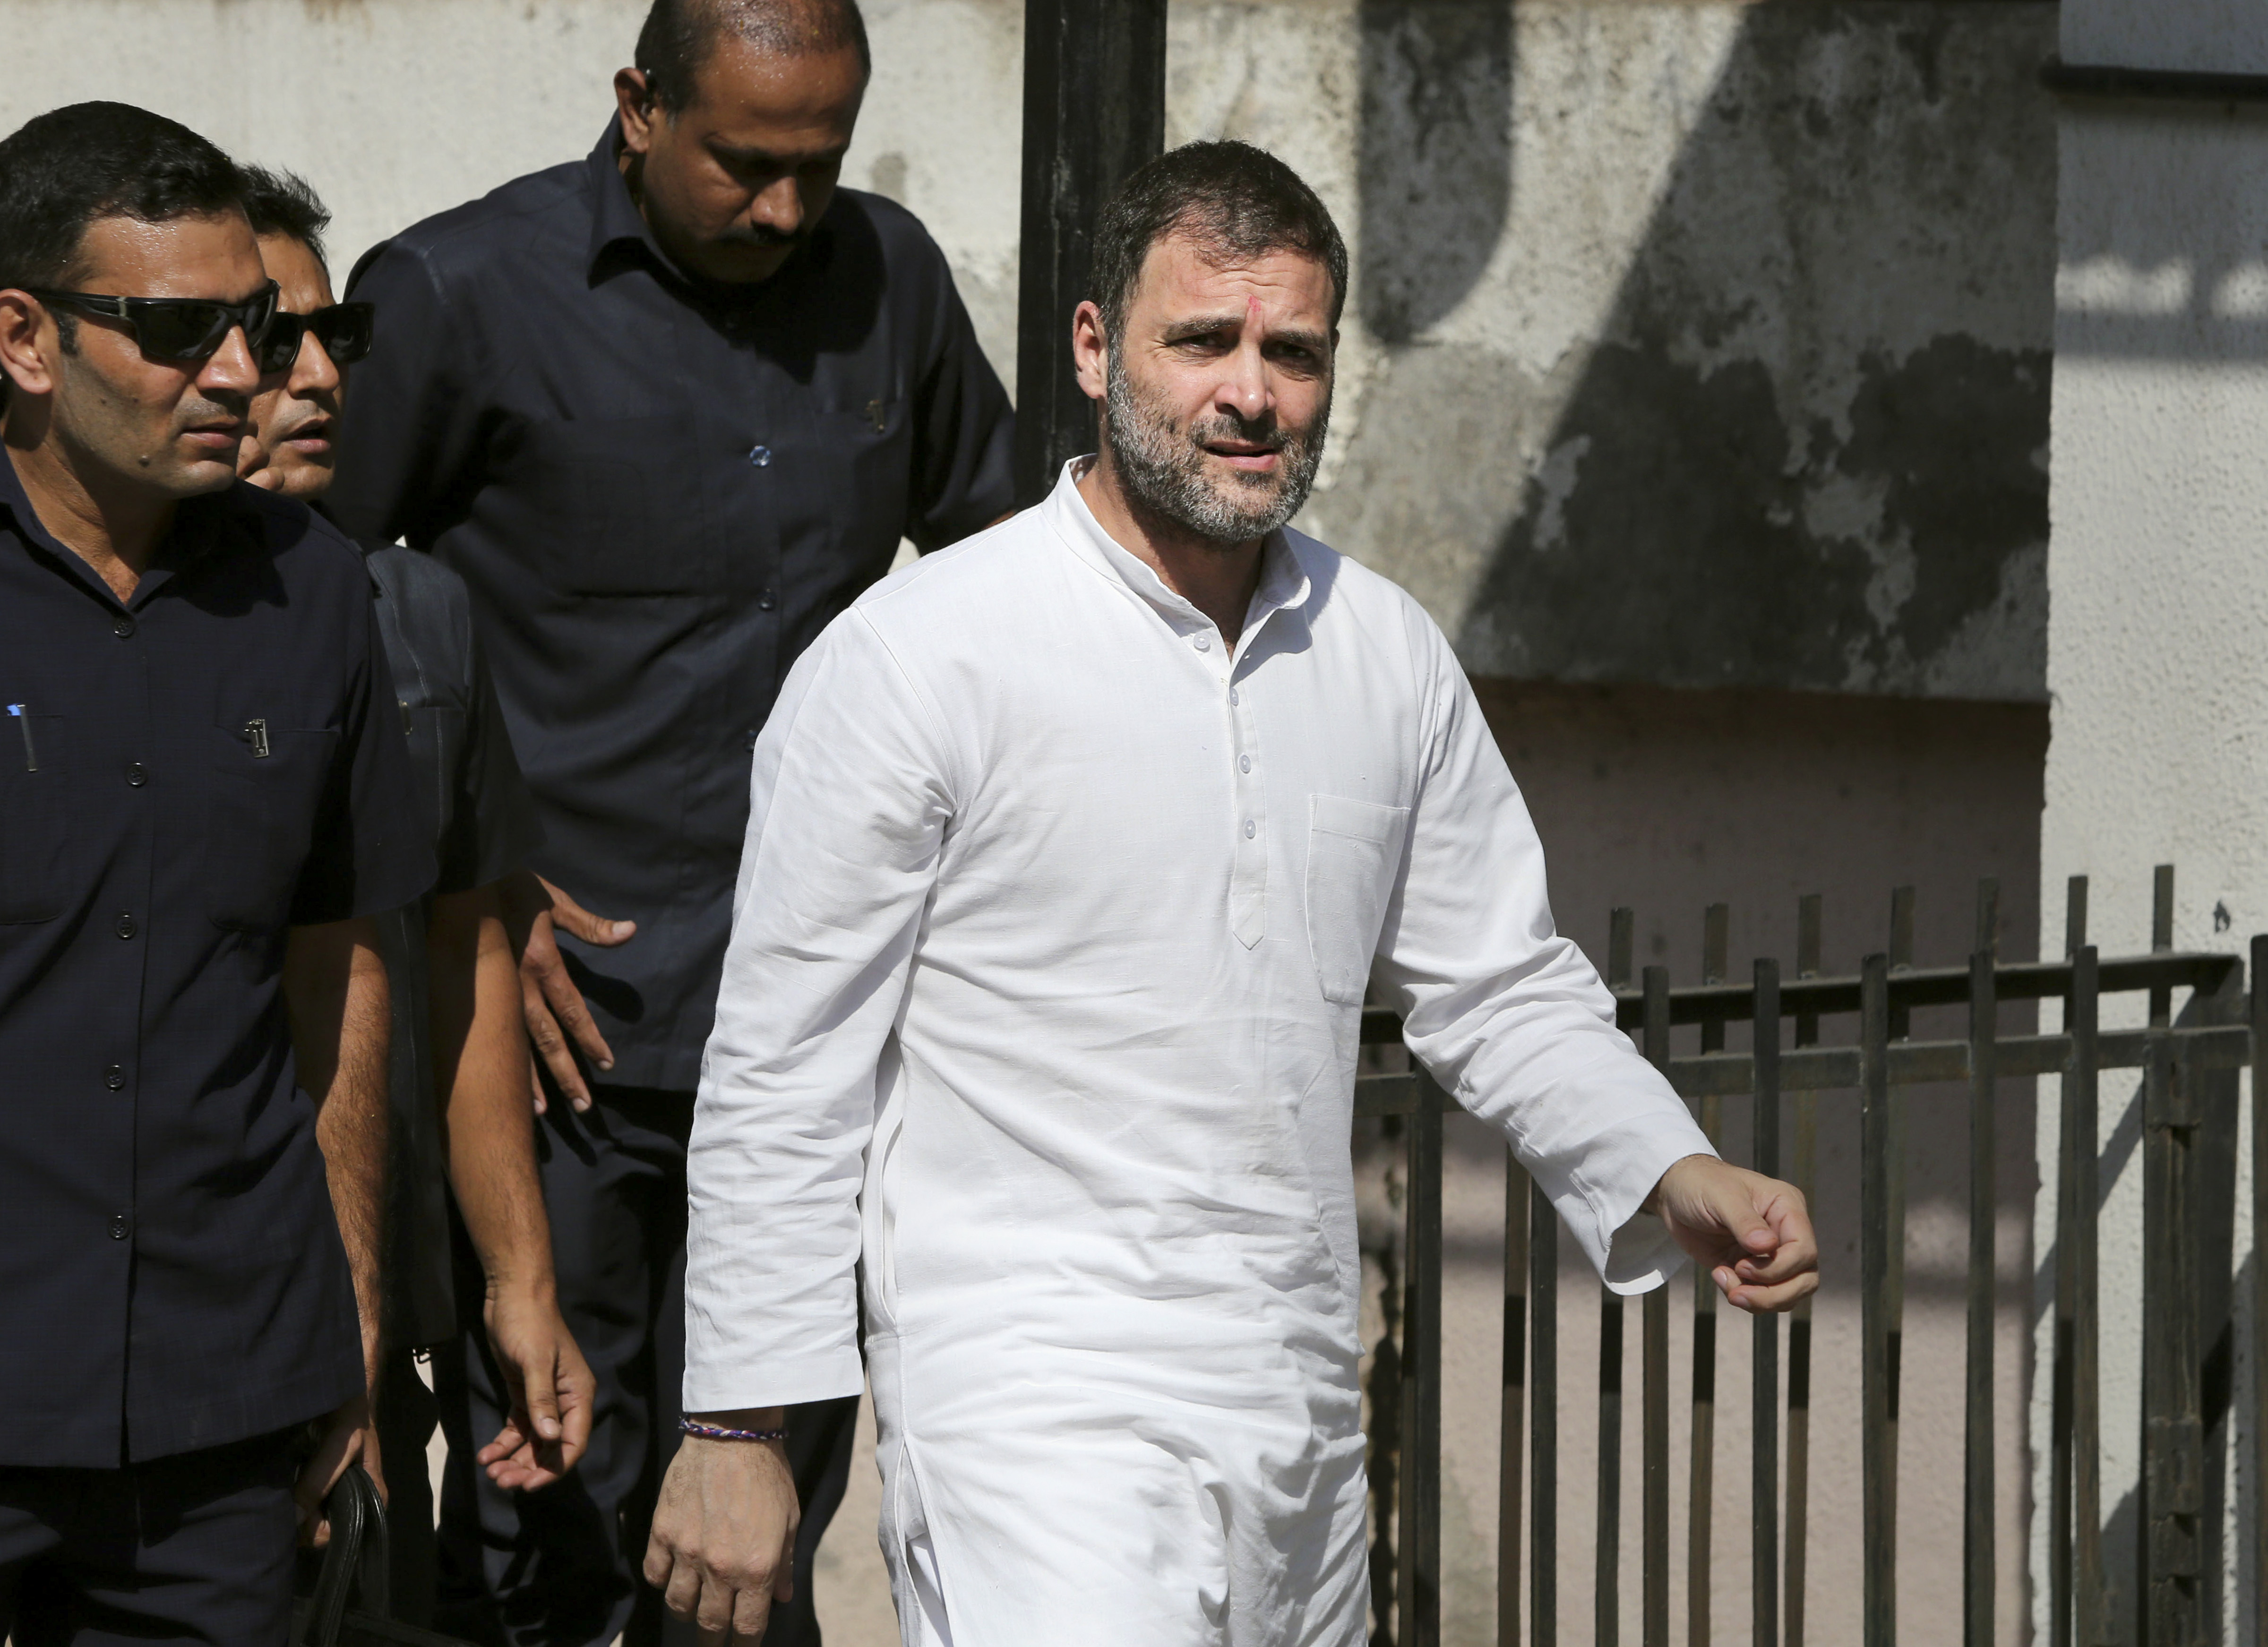 Congress leader Rahul Gandhi arrives in a local court in connection with two criminal defamation suits filed against him, in Ahmedabad, Friday, October 11, 2019